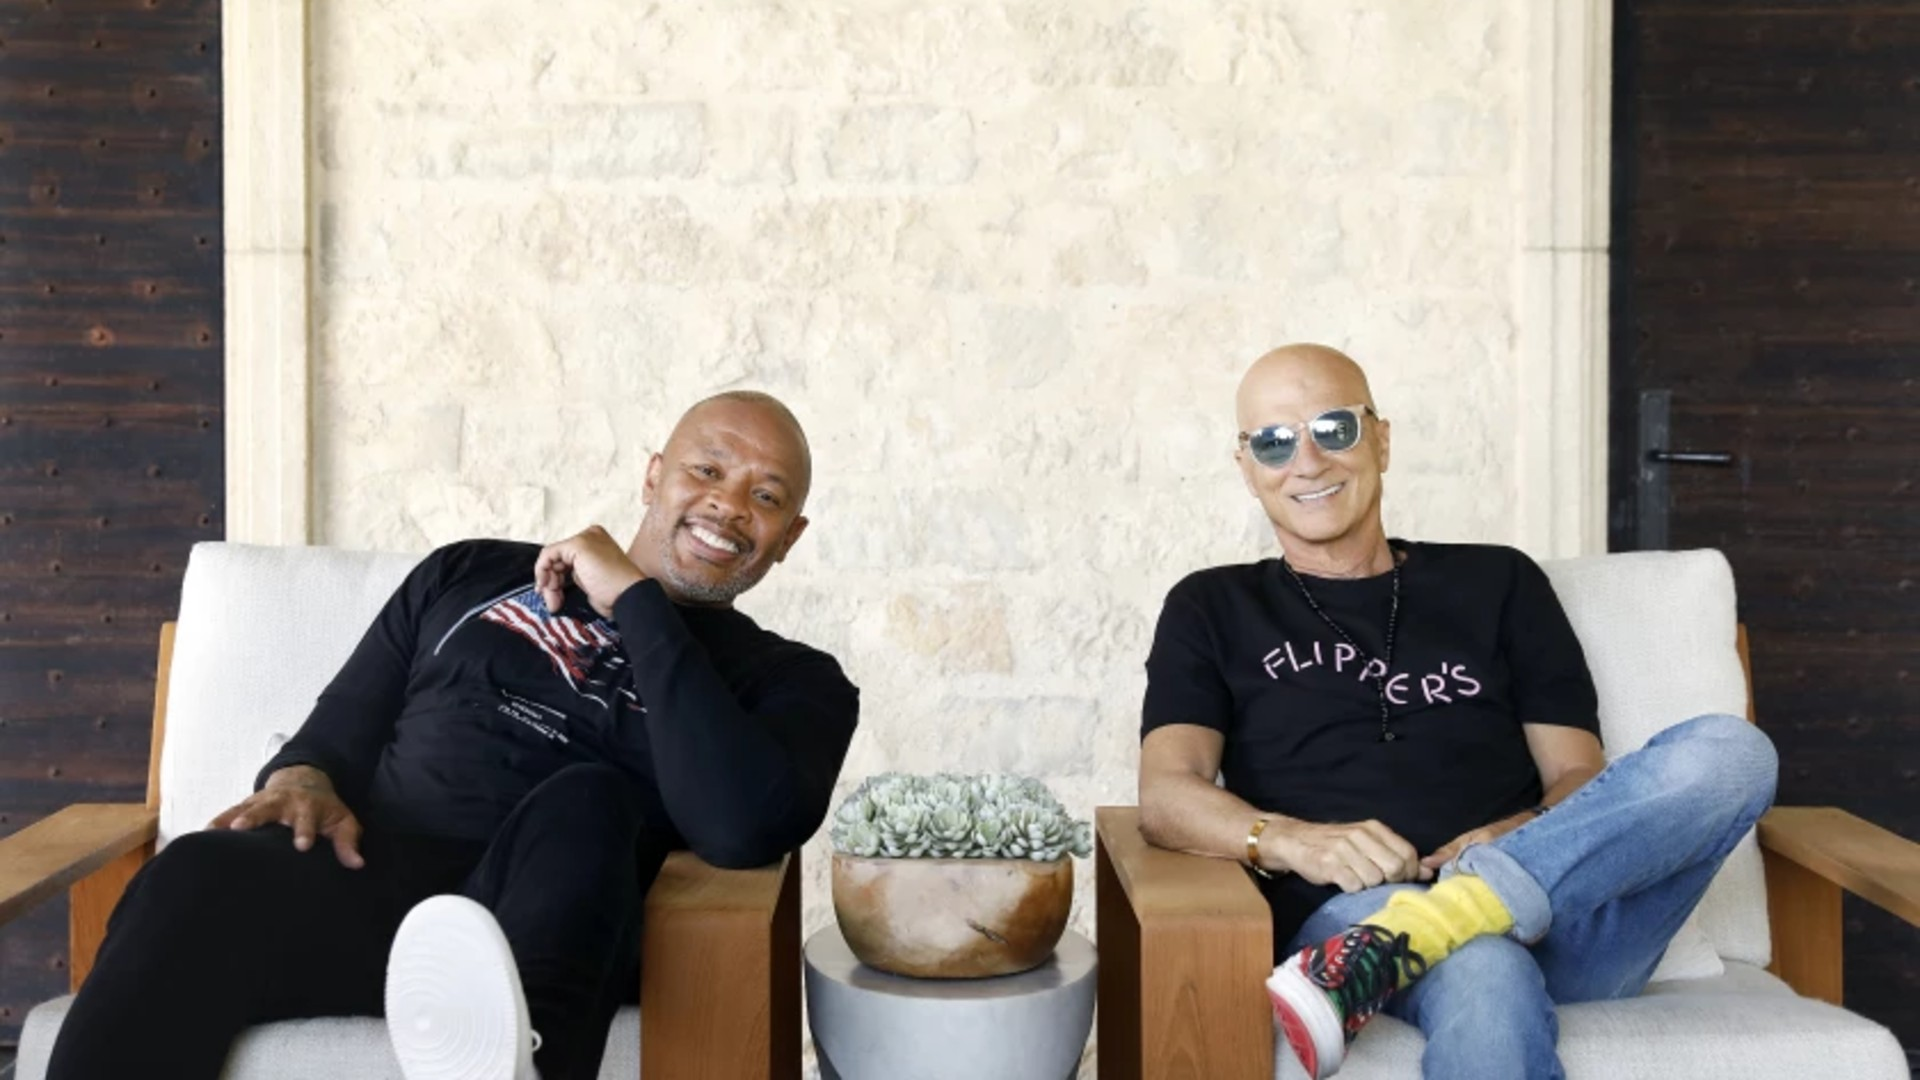 Dr. Dre, left, and Jimmy Iovine, both music moguls from humble roots, are photographed at Dr. Dre's home in Los Angeles on Friday, June 11, 2021. (Christina House / Los Angeles Times)